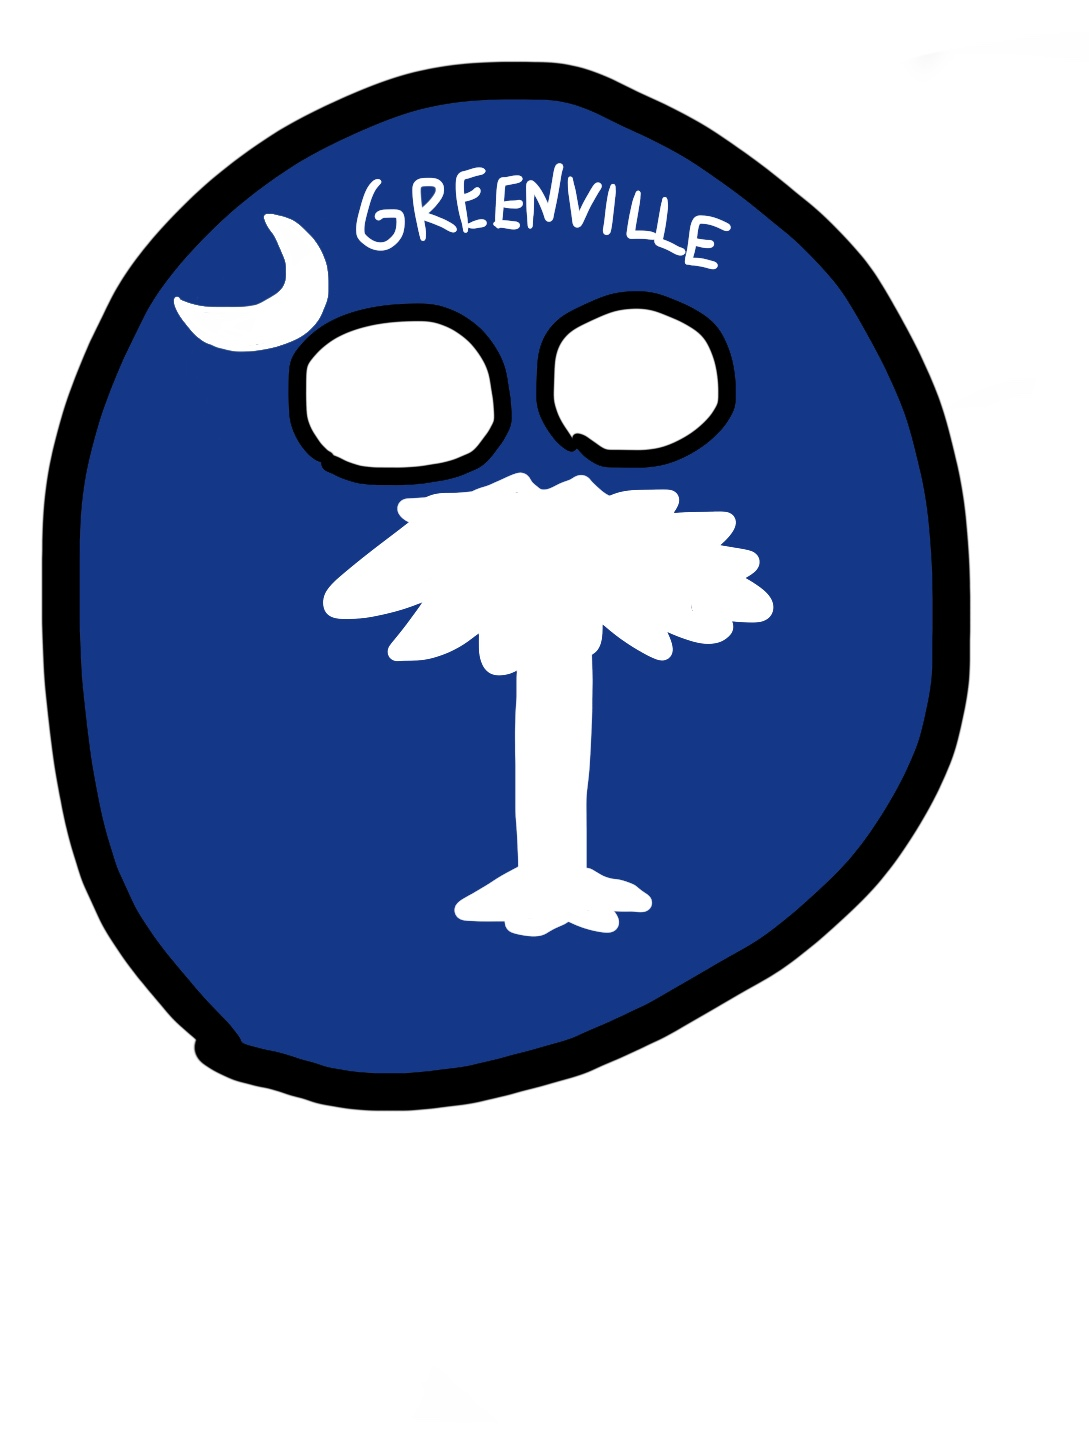 Greenvilleball (South Carolina)